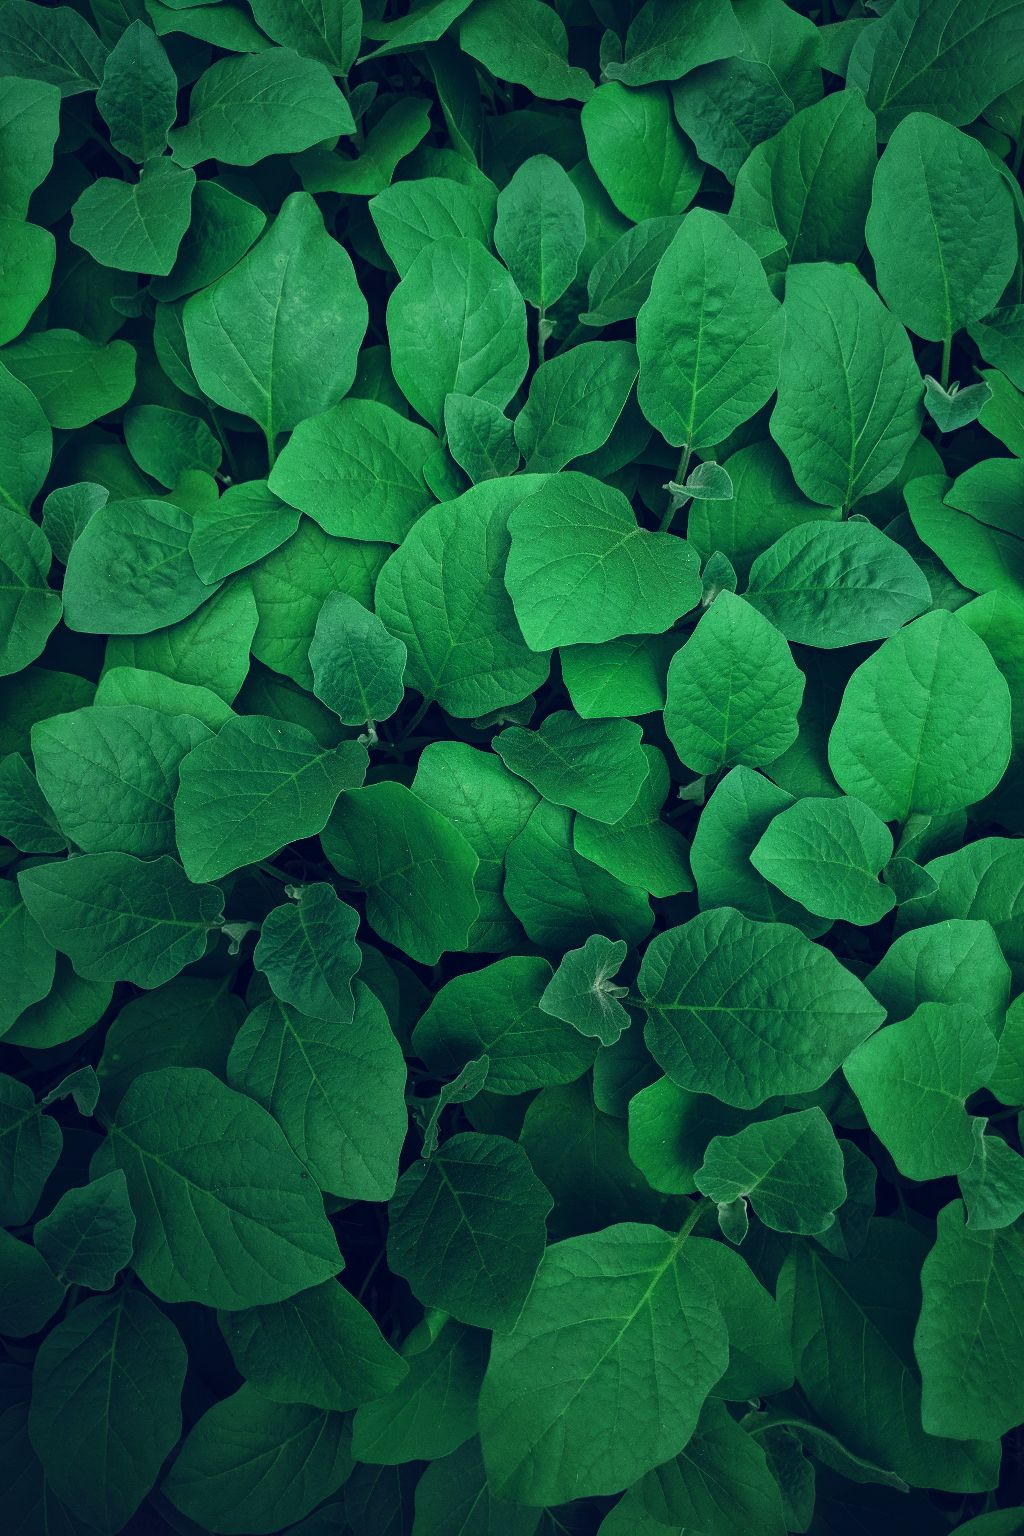 You only fail when you stop trying! Try remixing! Unsplash (Public Domain) #leaves #background #backgrounds #green #grass #freetoedit